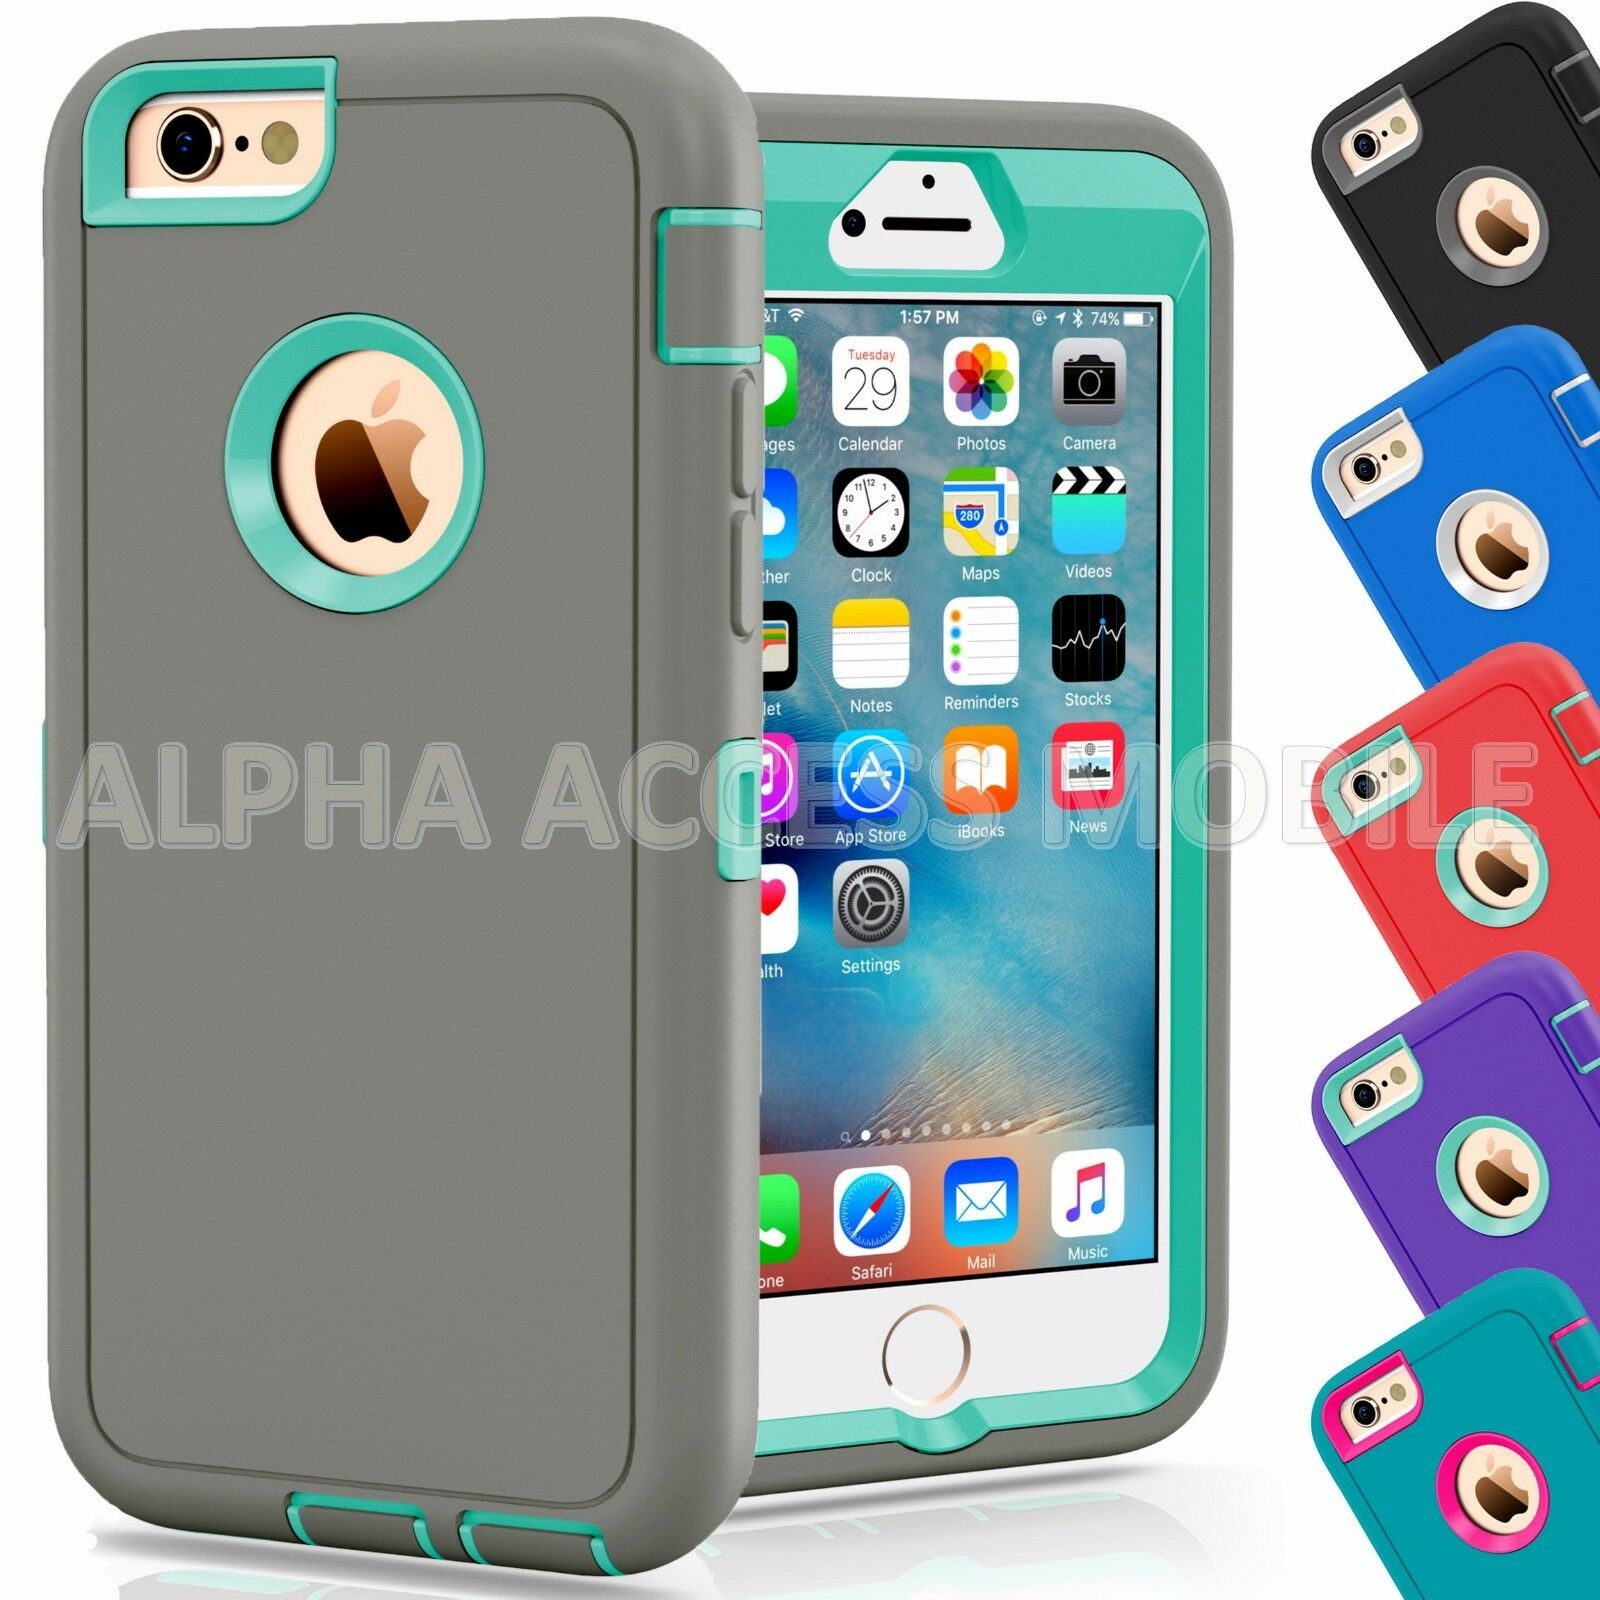 apple iphone 6 cases protective hybrid shockproof cover for apple 3199